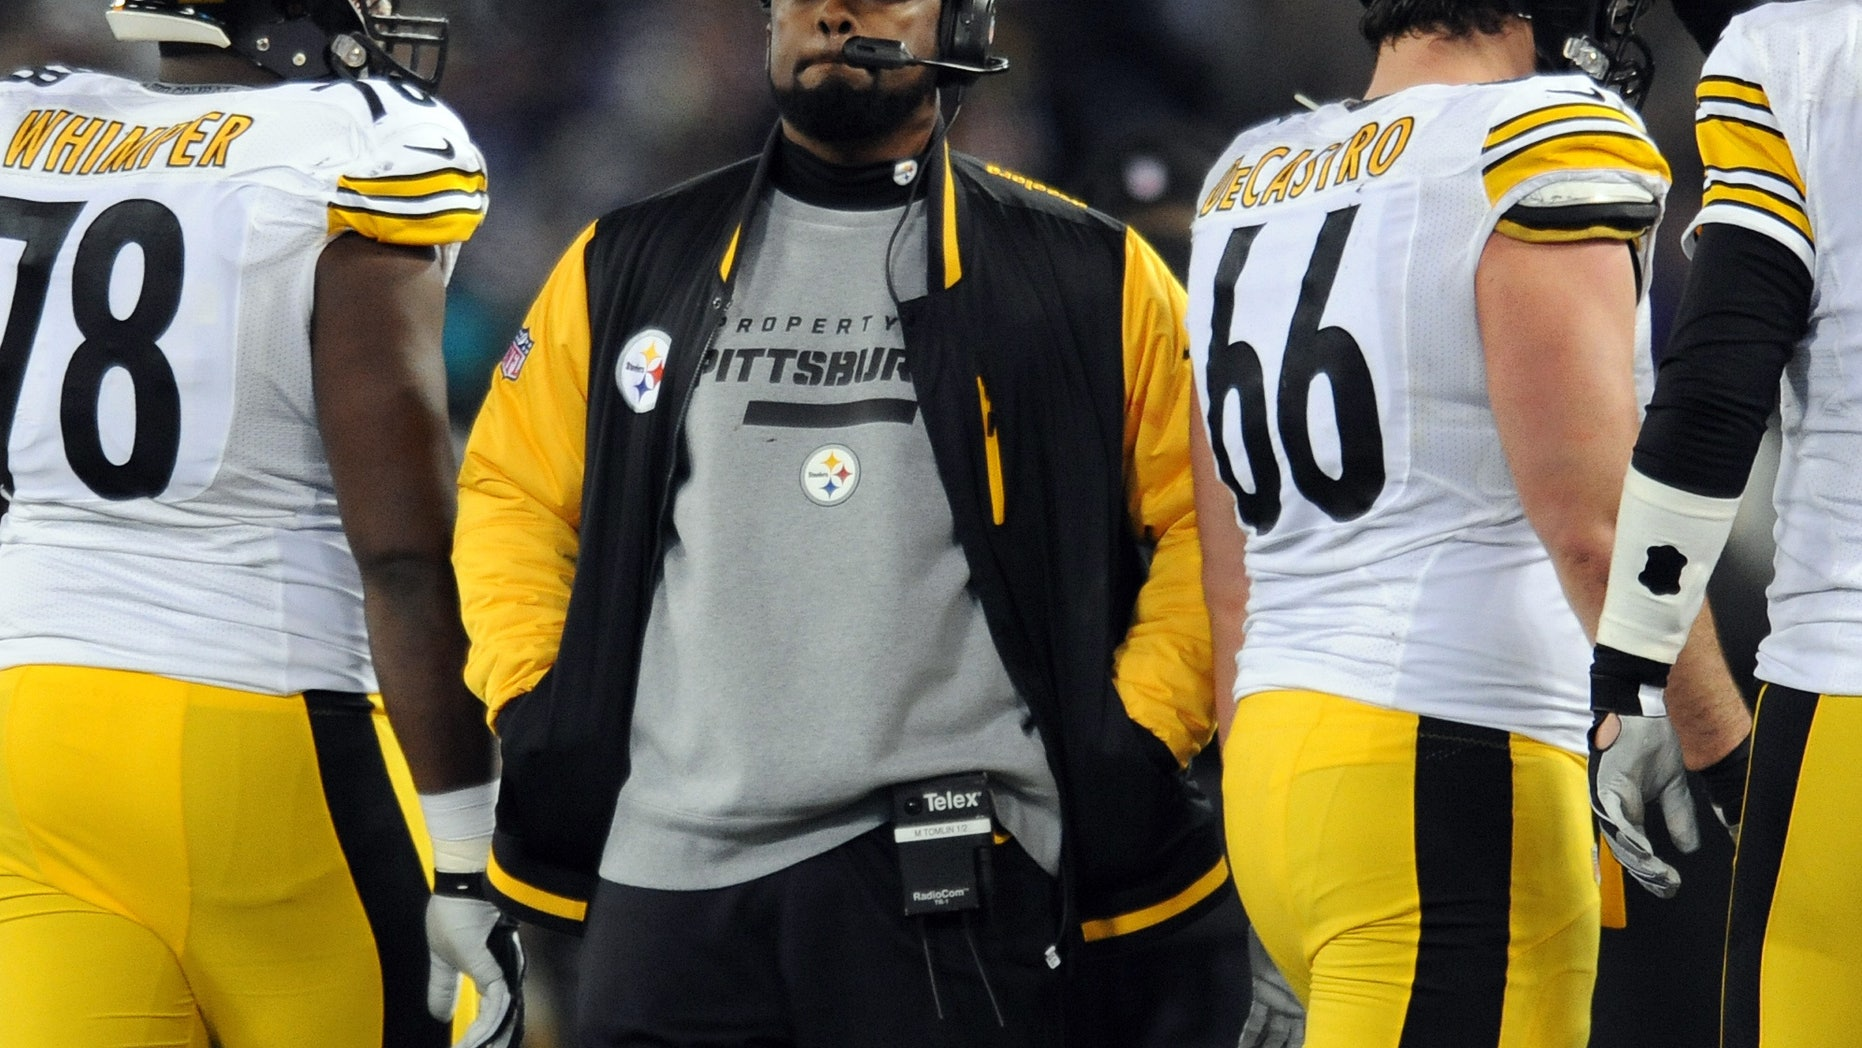 Nov. 28, 2013: In this file photo, Pittsburgh Steelers coach Mike Tomlin stands on the sideline during an official play review in the second half of an NFL football game against the Baltimore Ravens, in Baltimore.